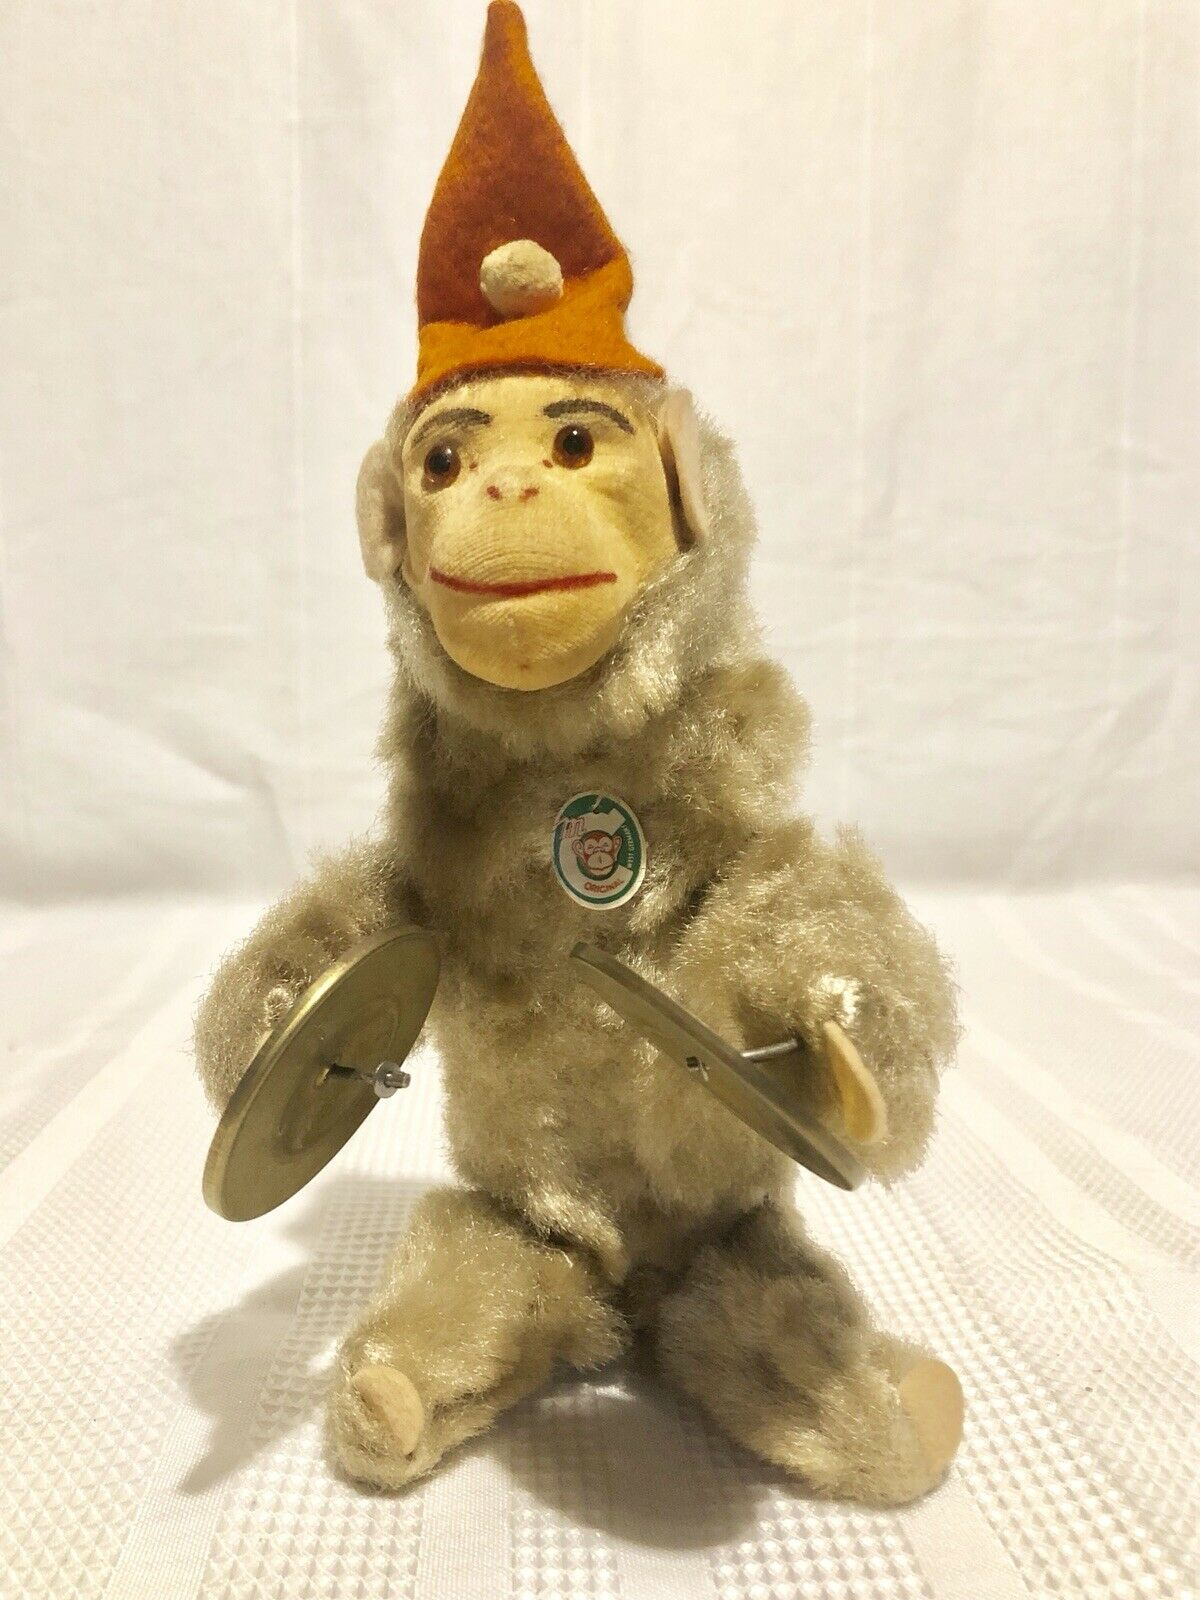 VINTAGE WIND UP TOY MONKEY W  CYMBALS-LABELED MC ORIGINAL WEST GERMANY 1950's